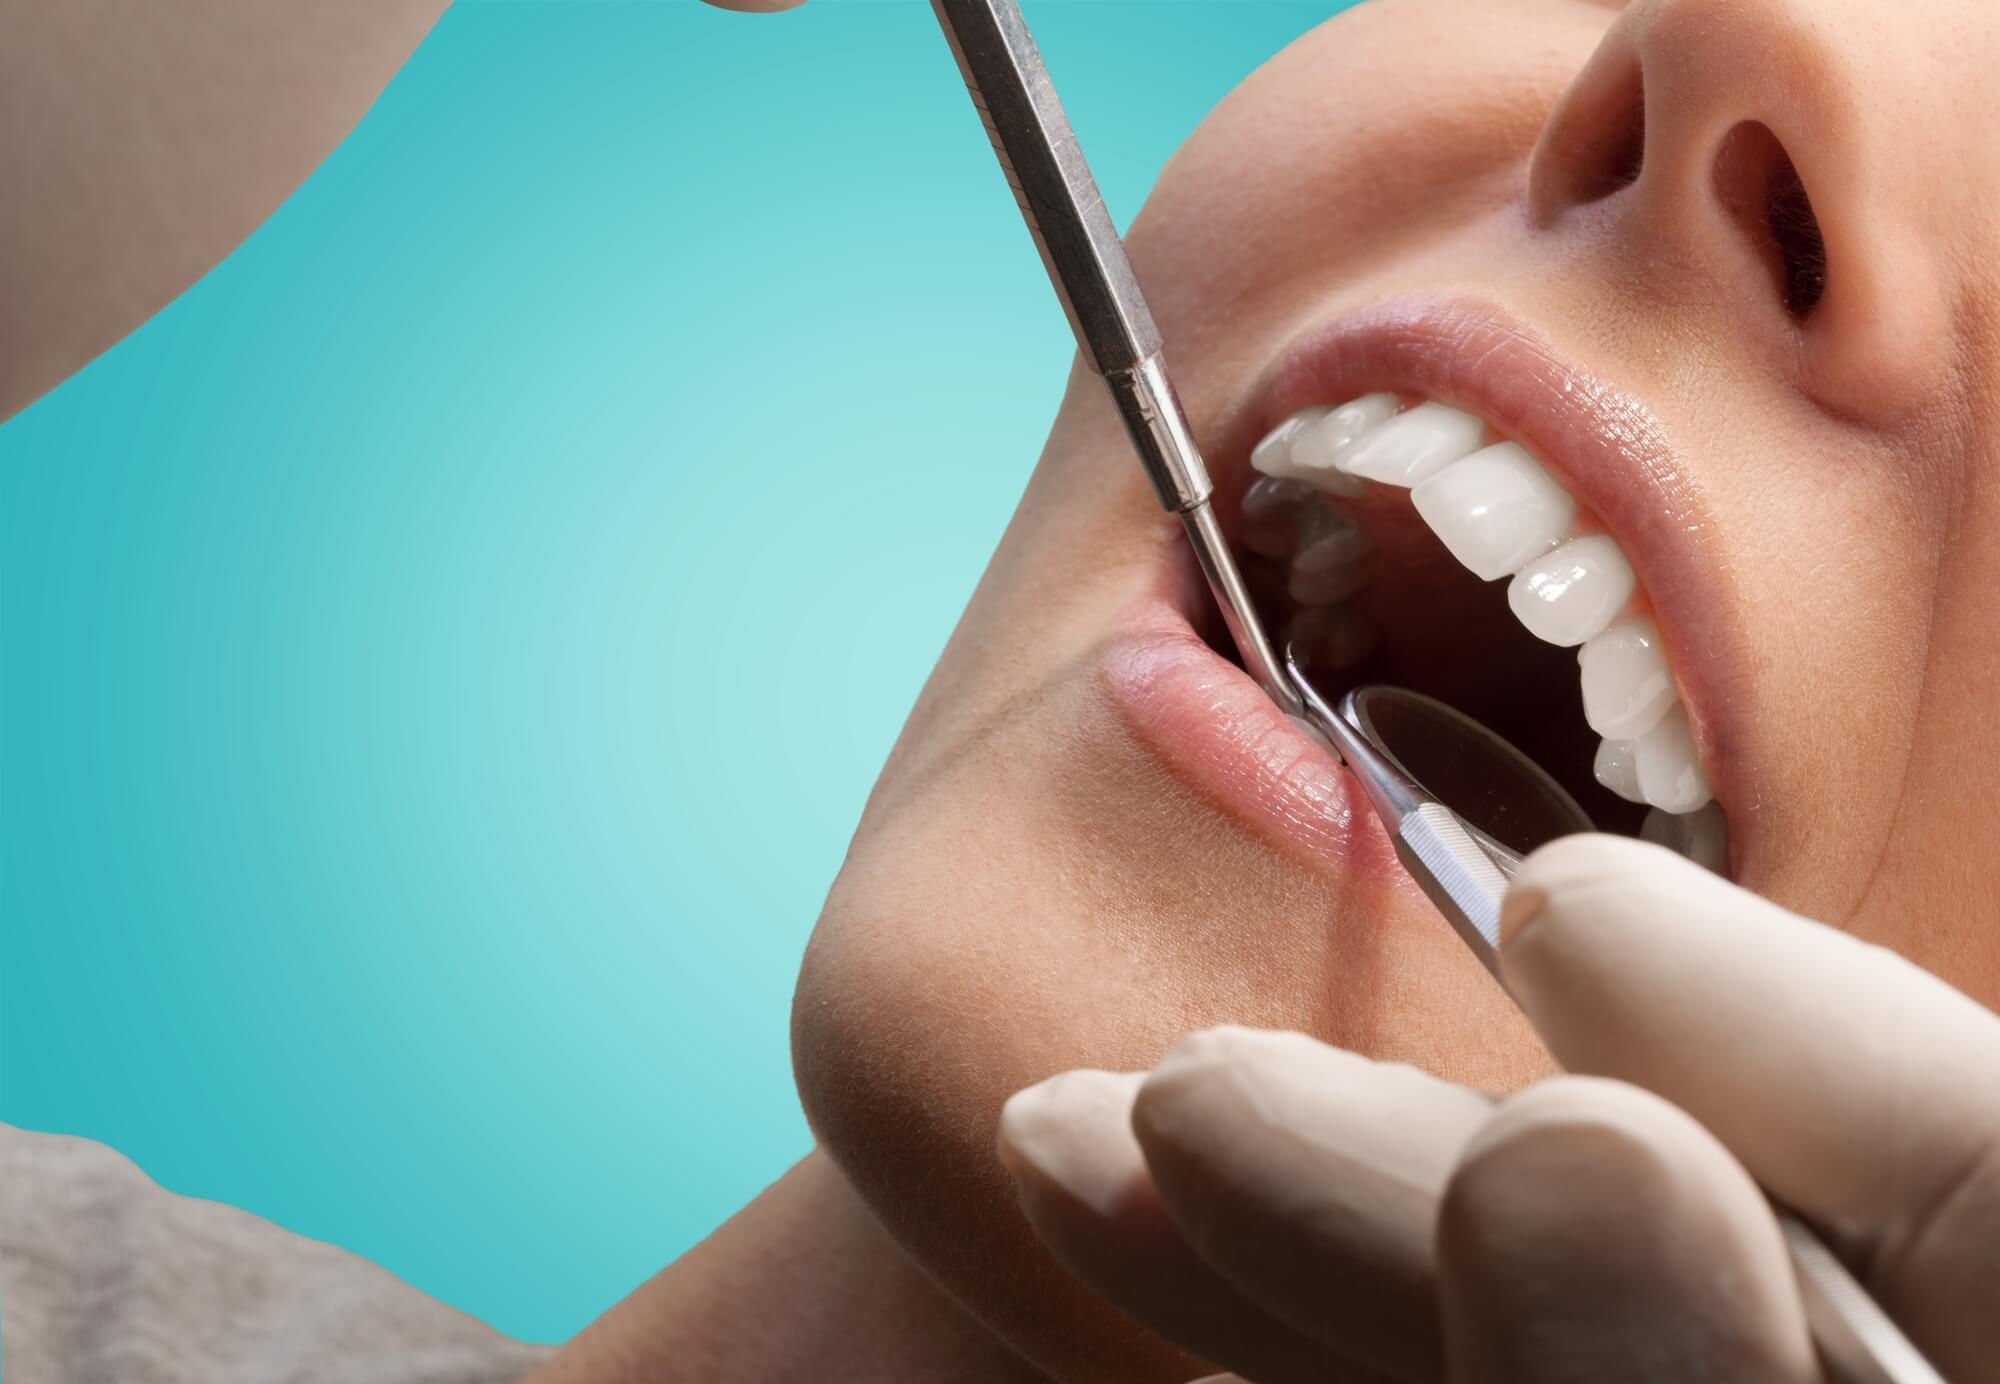 where is the best emergency dentist west palm beach?